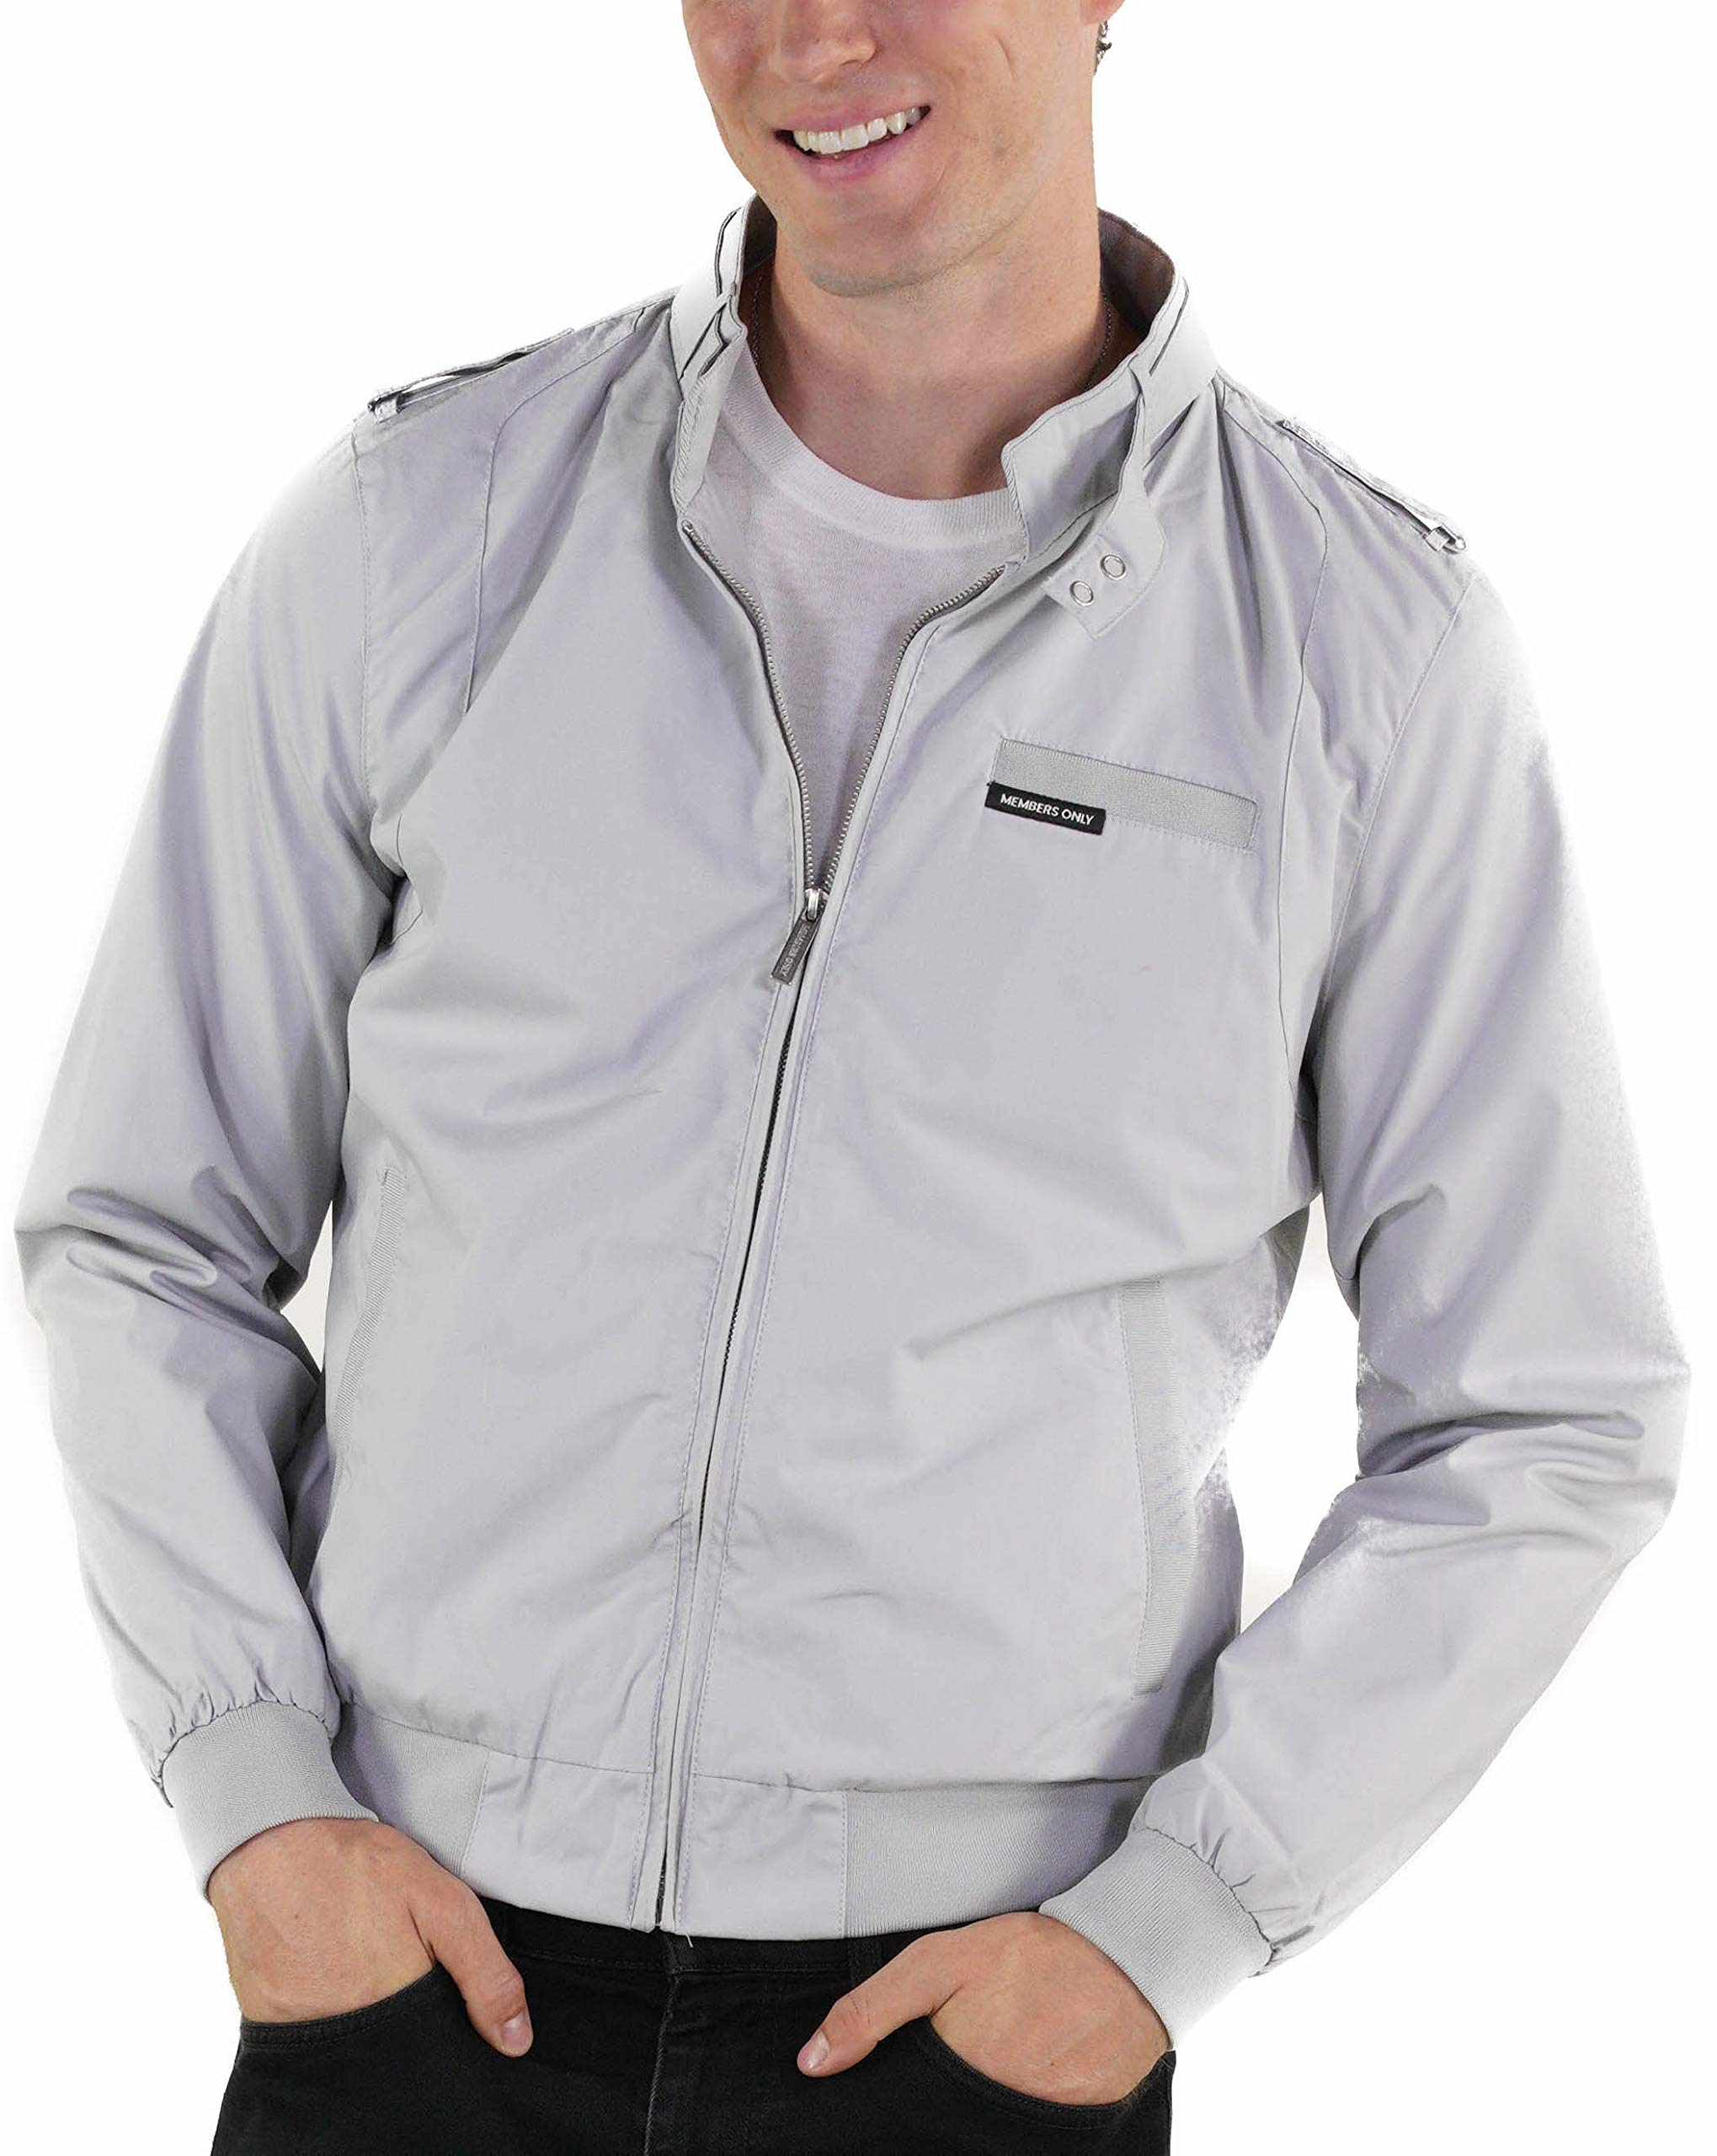 Members Only Men's Original Iconic Racer Jacket, Light Grey, Extra Large by Members Only